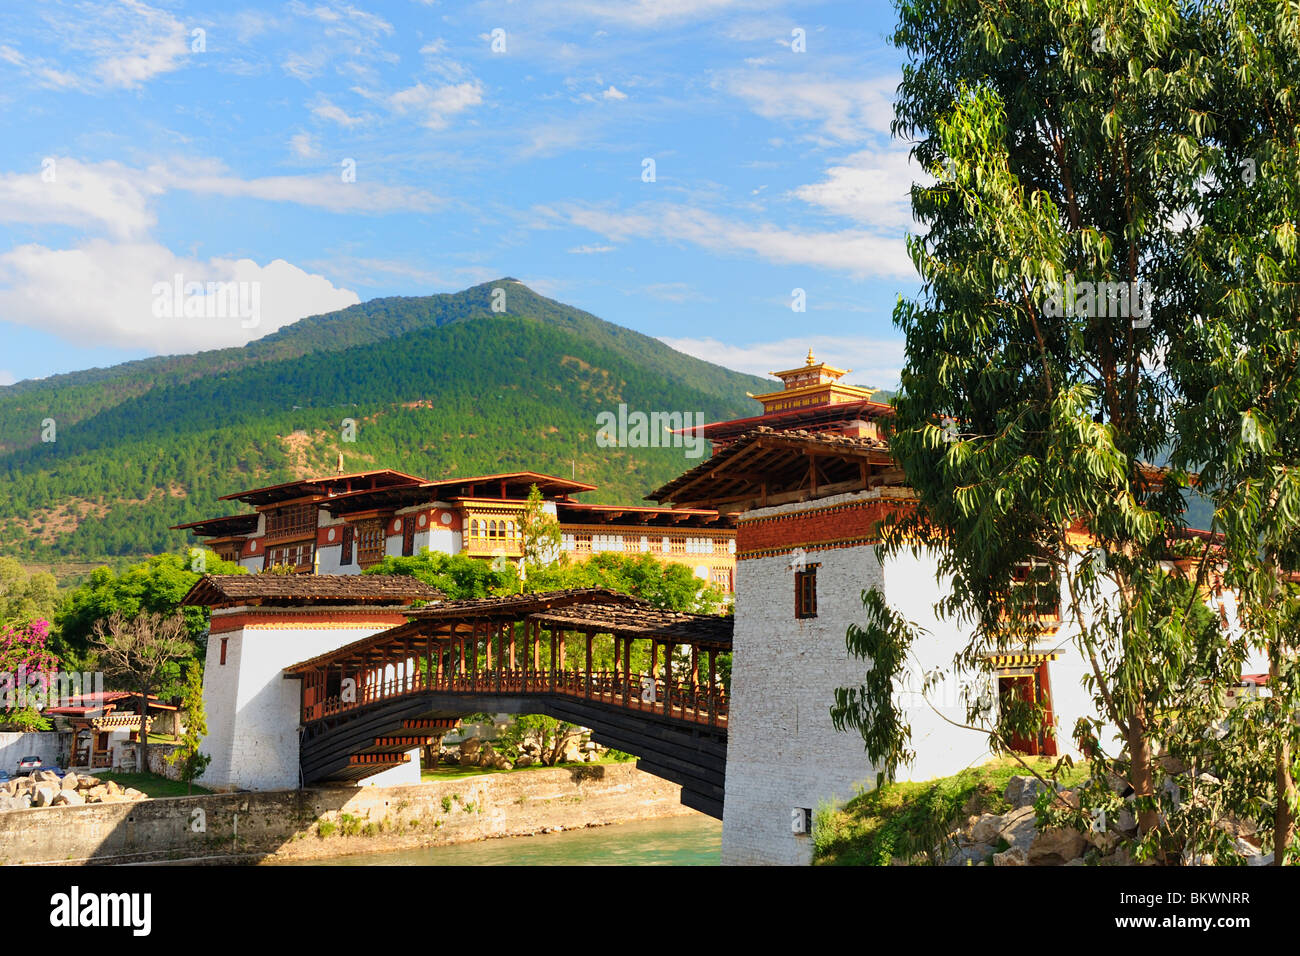 Bridge towards Punakha Dzong - Stock Image